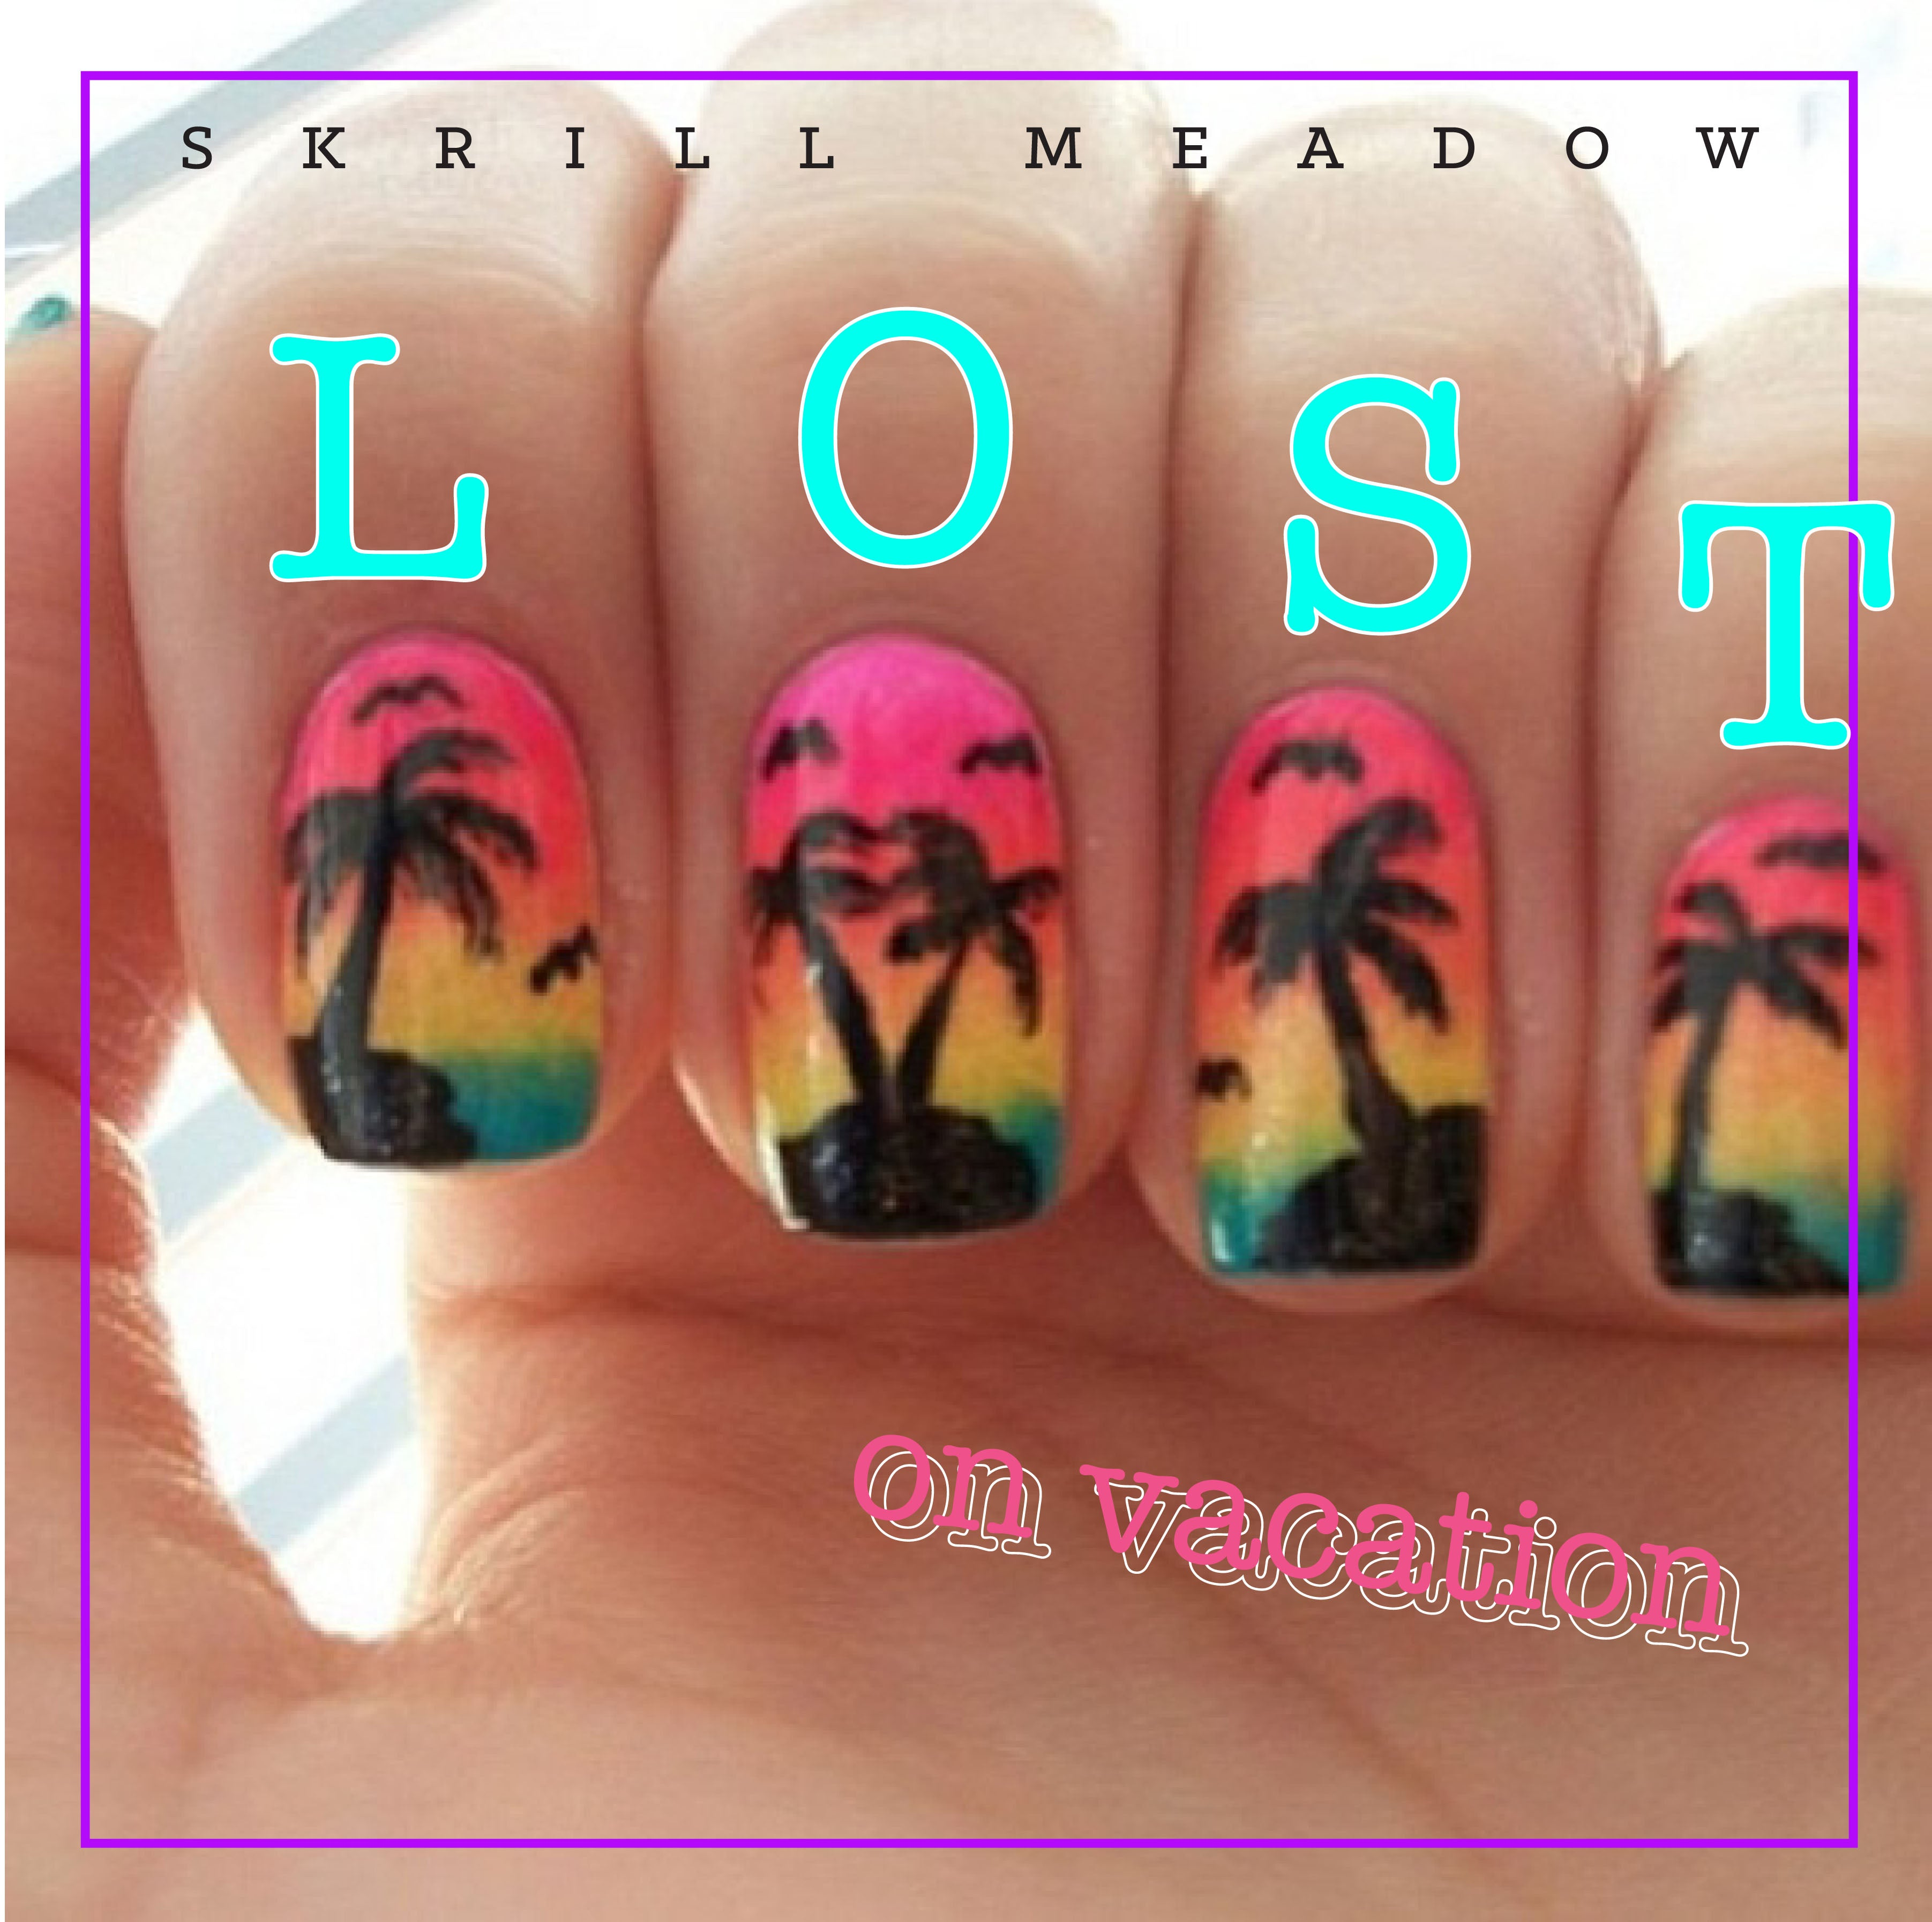 Skrill Meadow - Lost On Vacation FTR 041